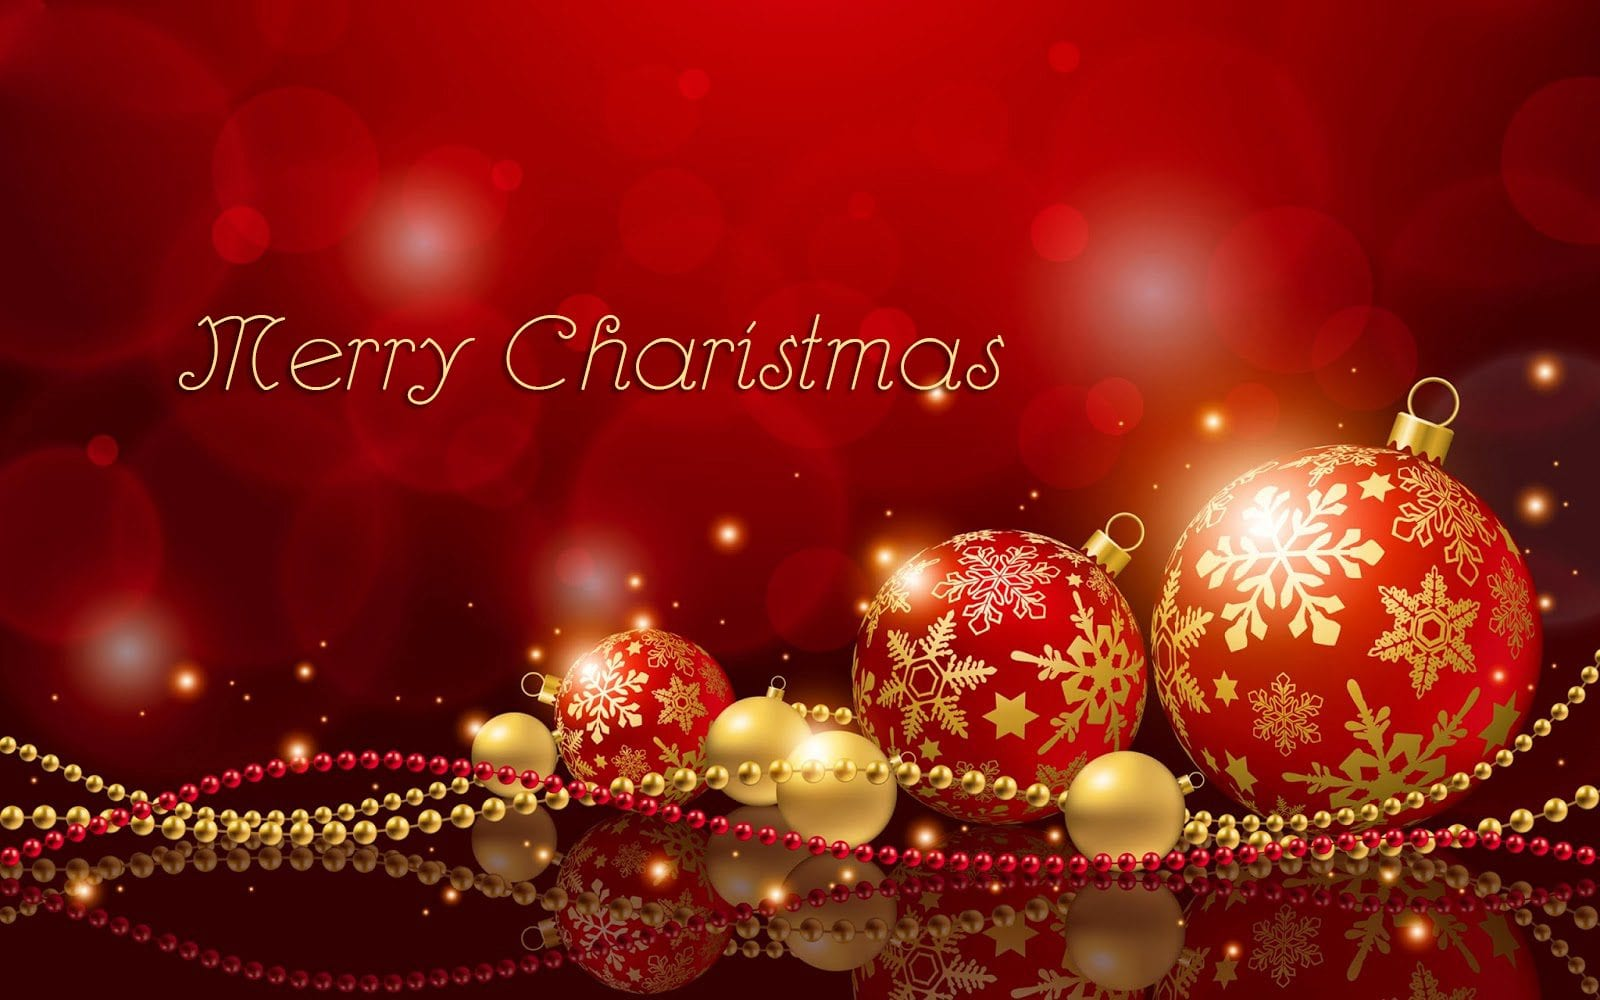 merry-christmas-greeting-image-HD-wallpaper